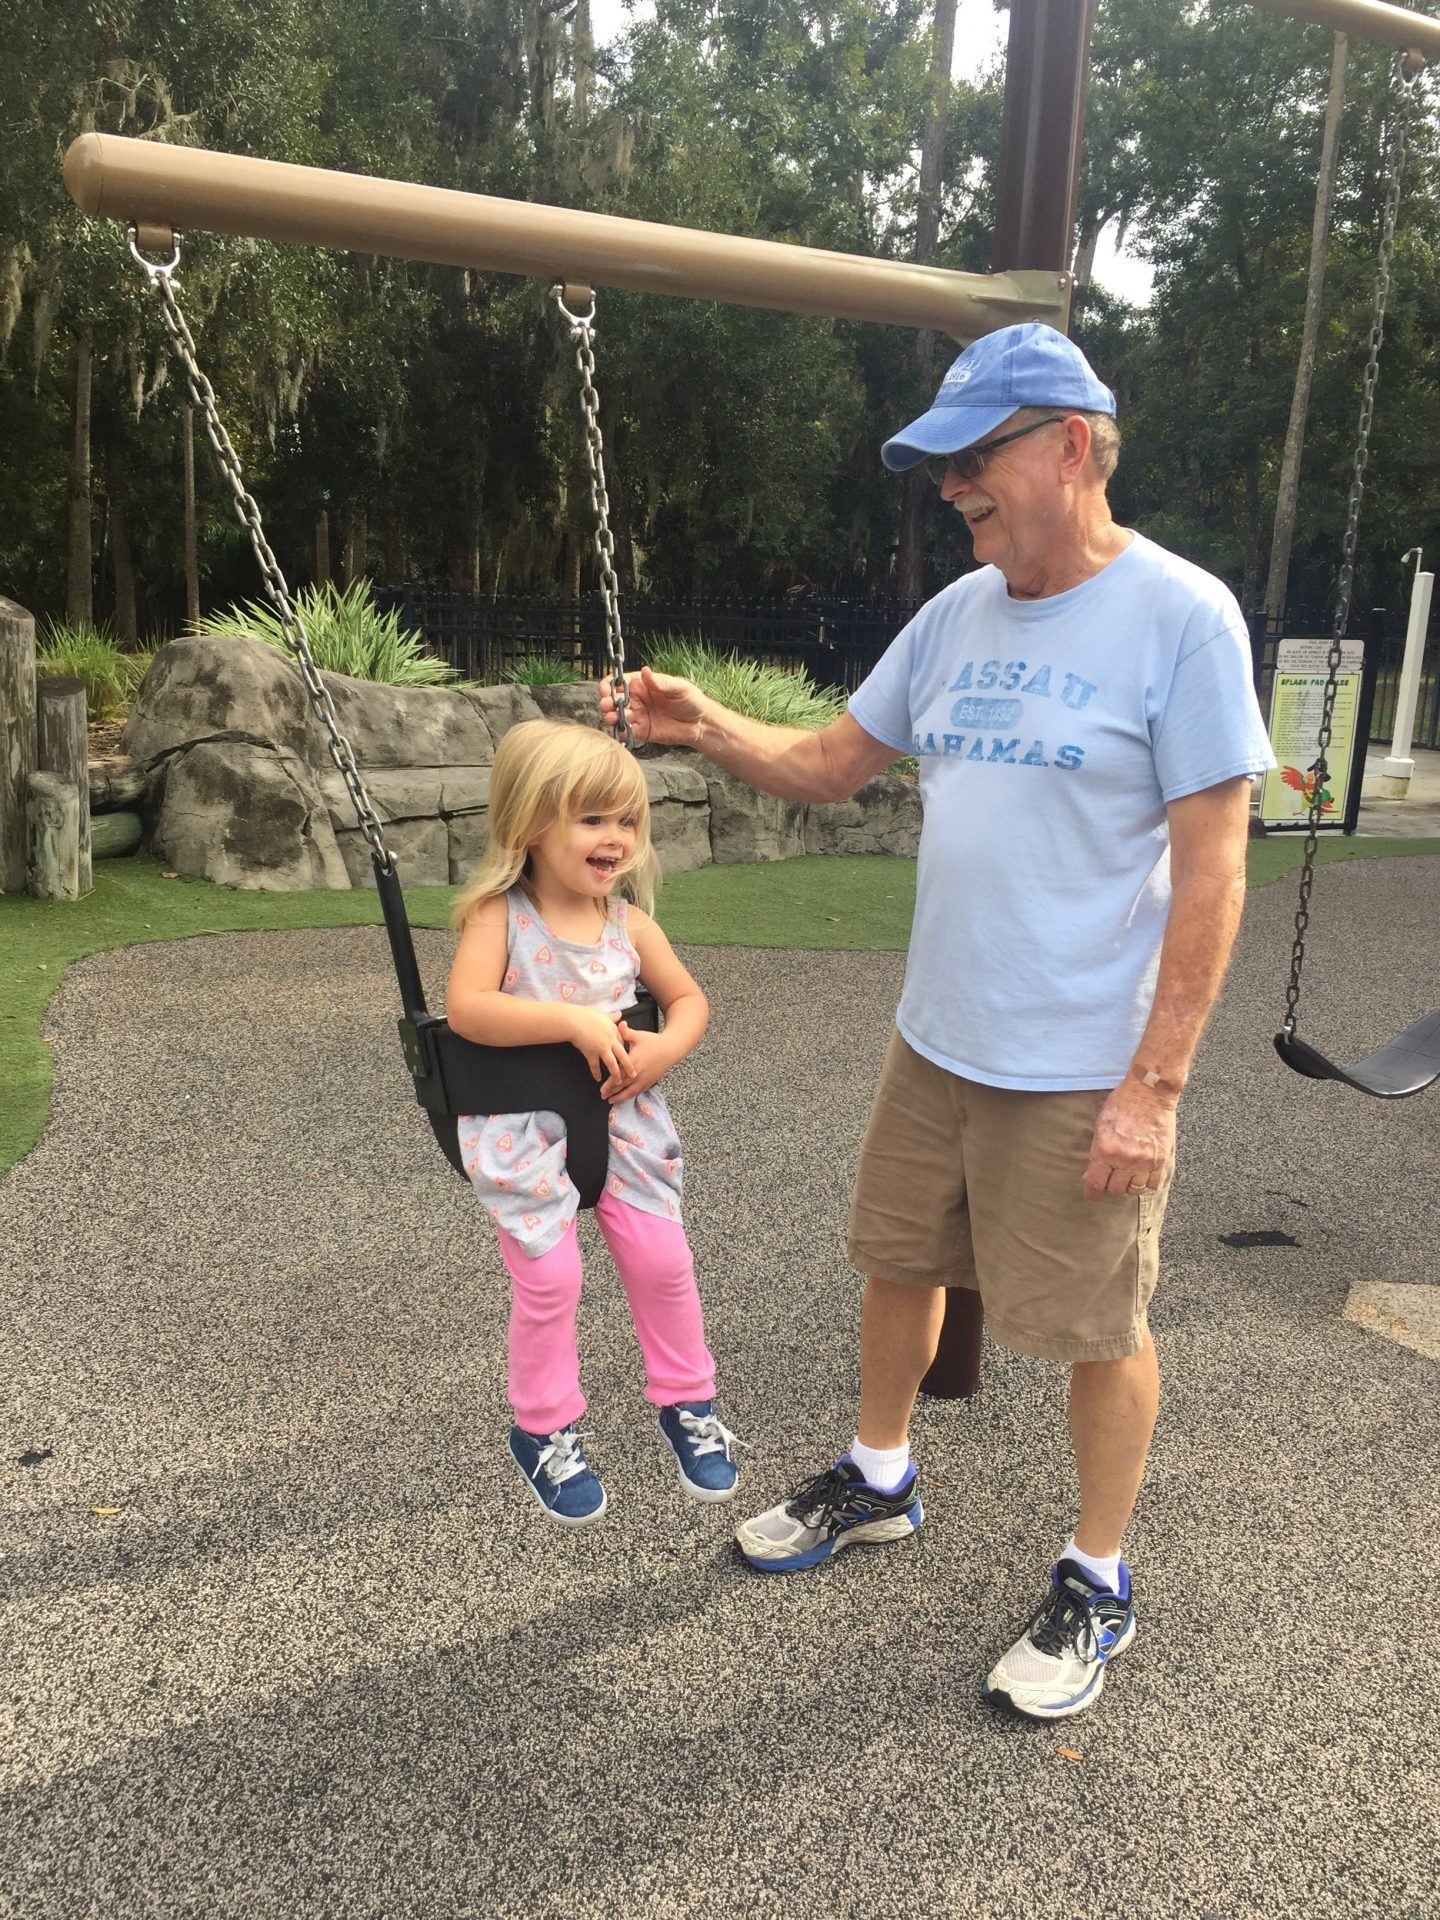 Papa T and Lilly at the park